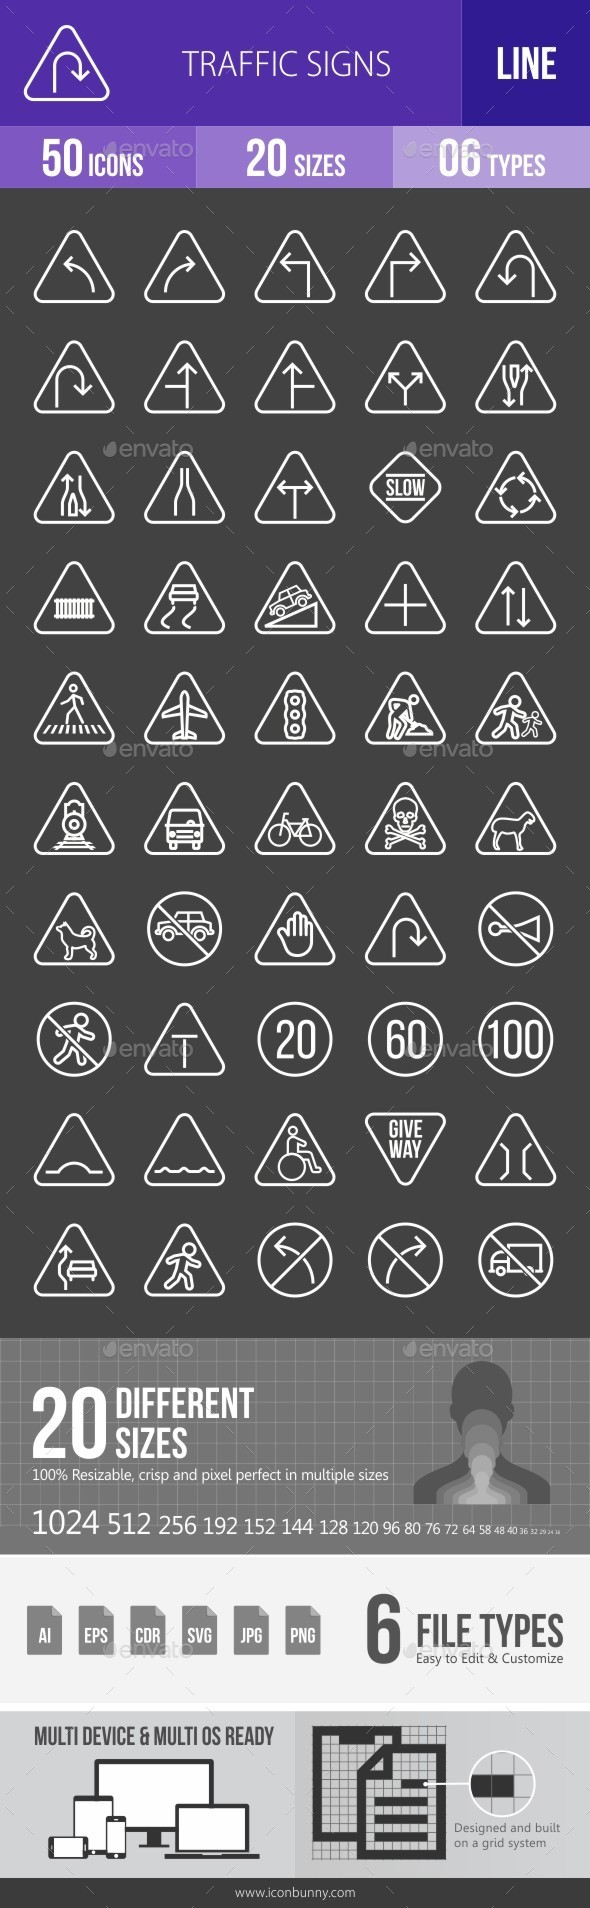 Traffic Signs Line Inverted Icons - Icons